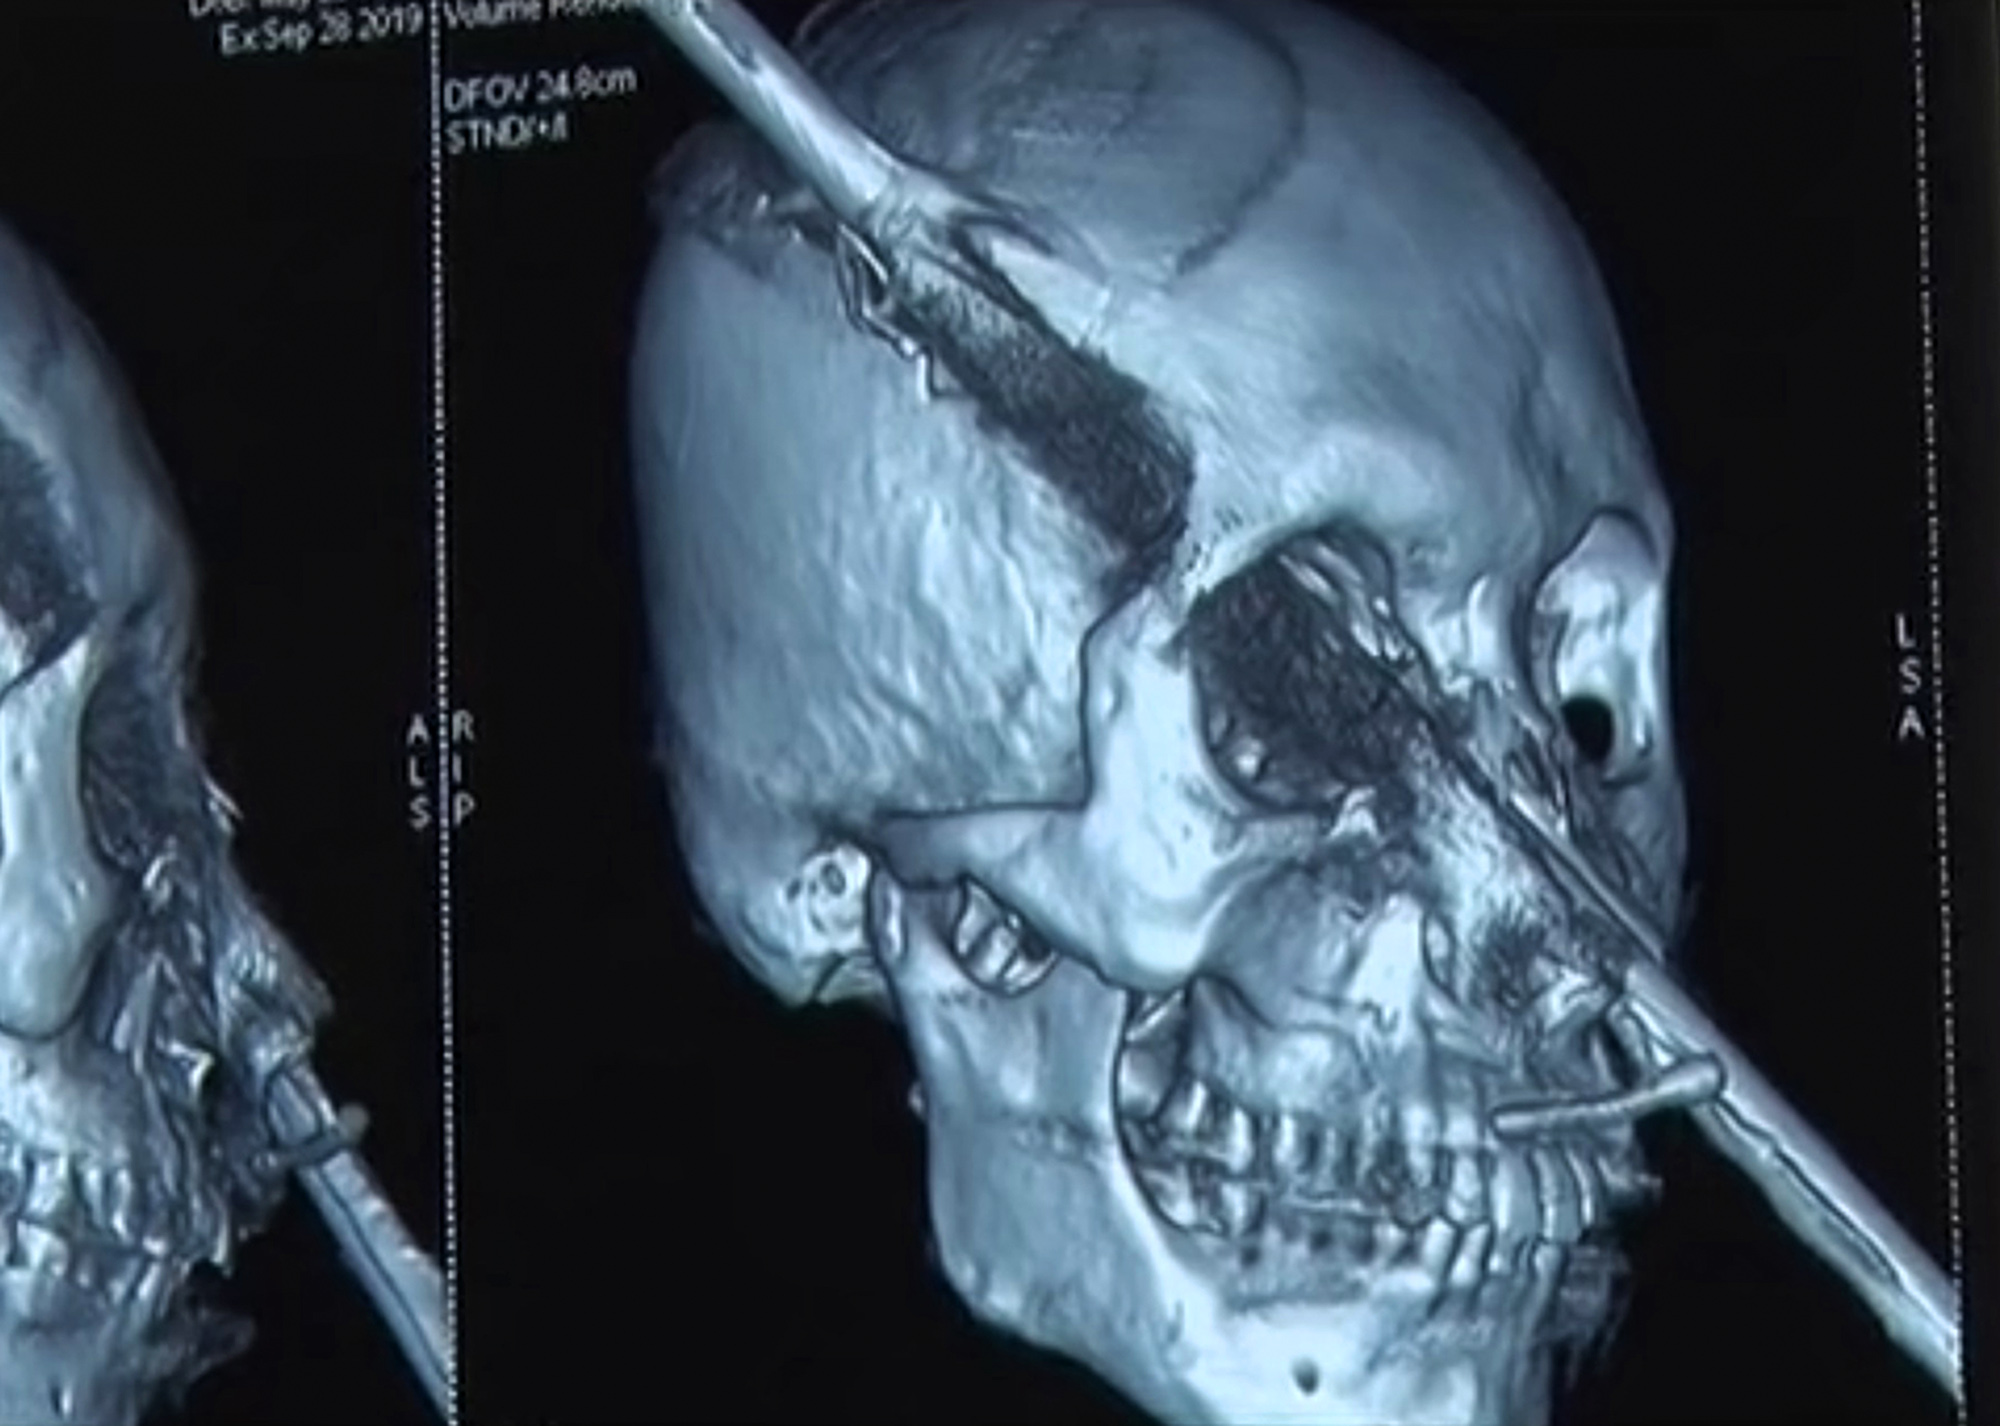 Construction worker impaled by steel bar